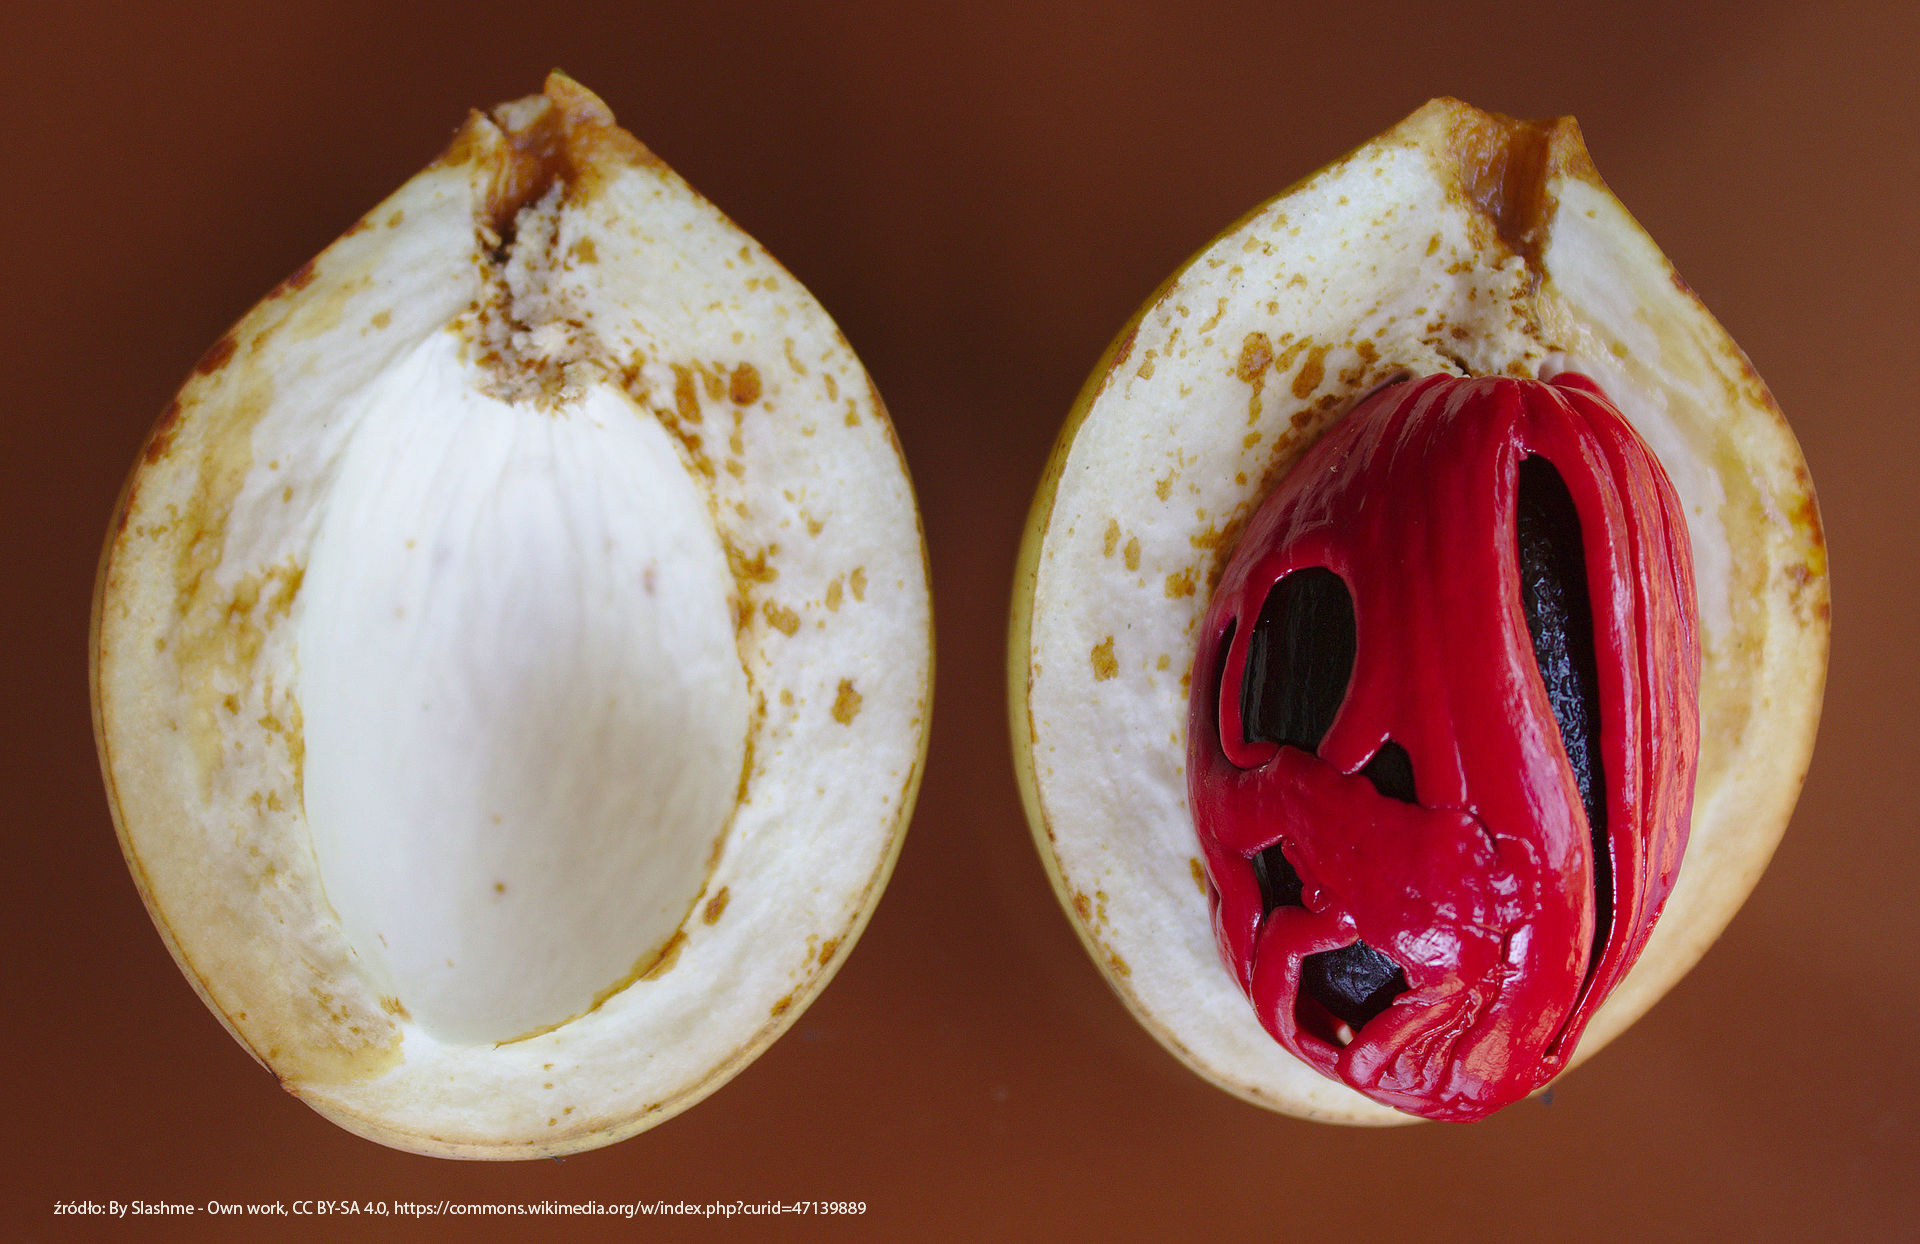 nutmeg_fruit_seed_and_aril